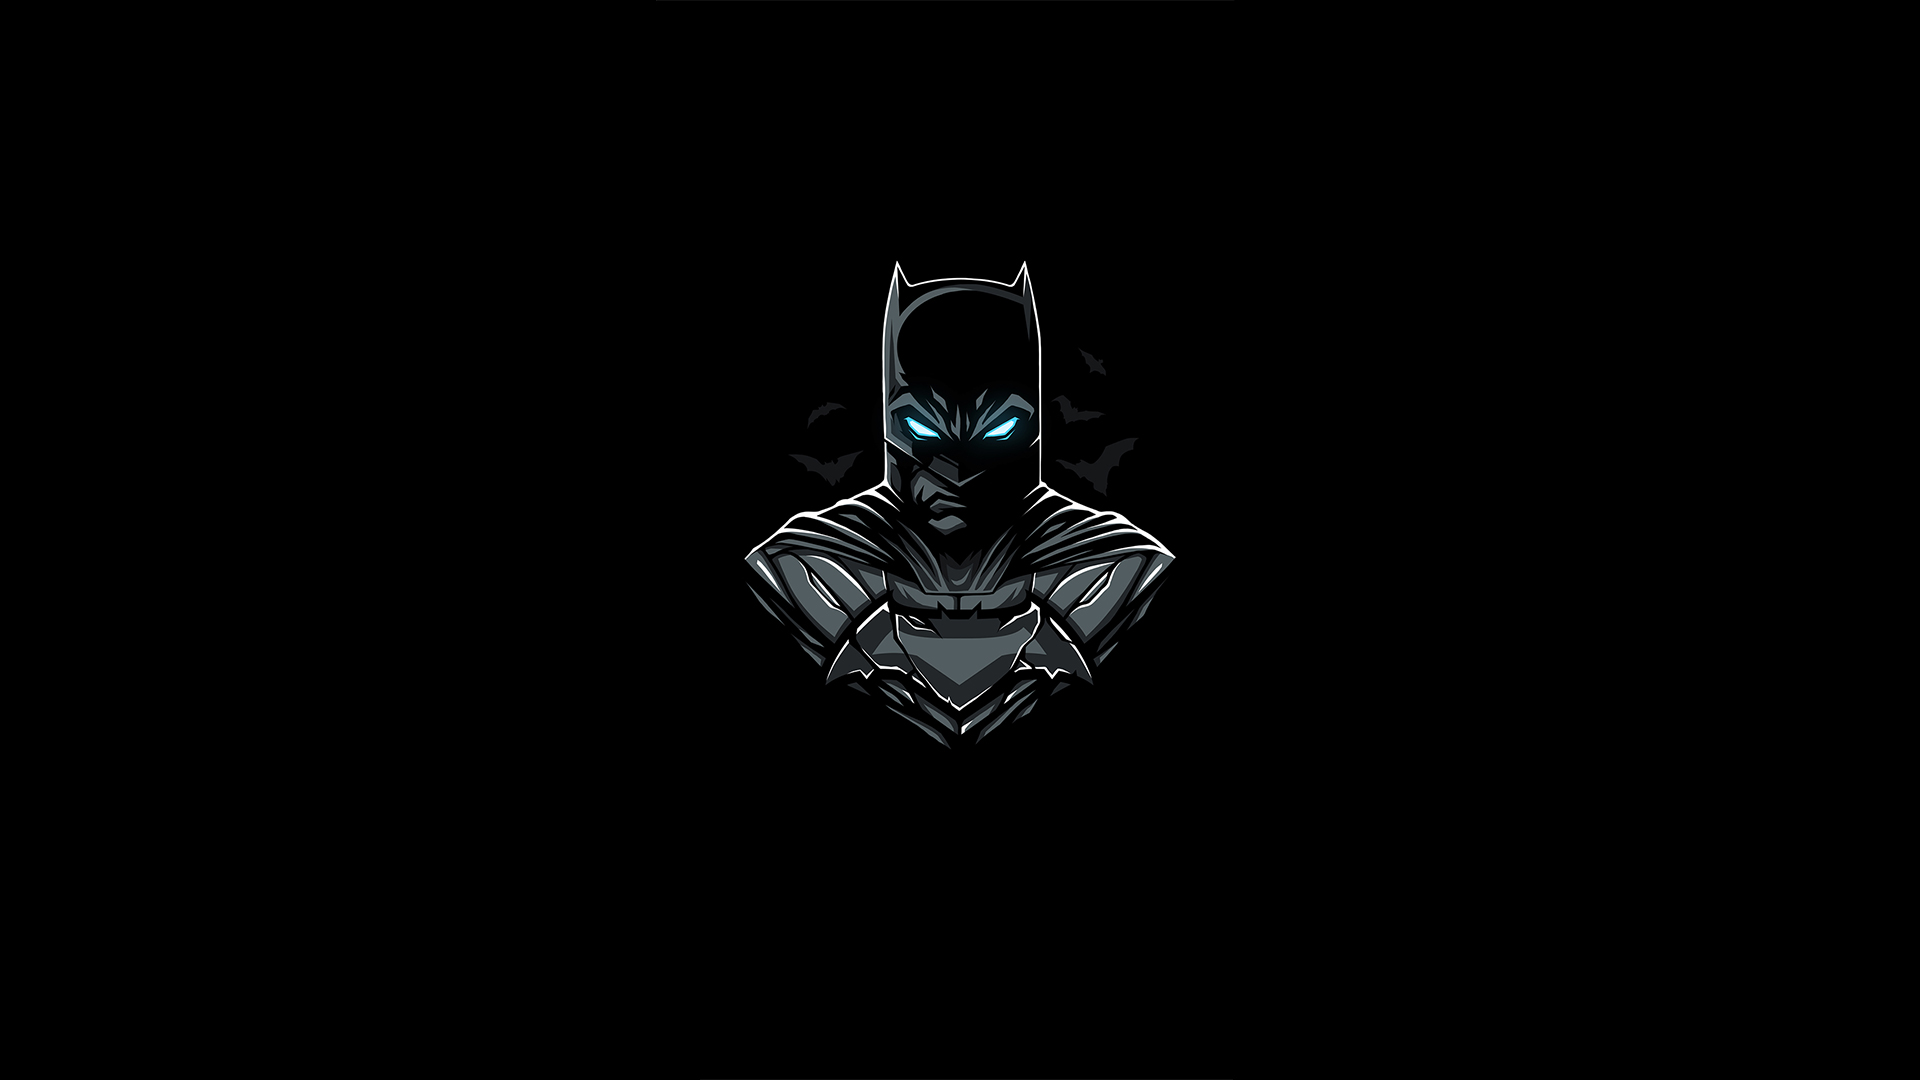 Batman dark wallpaper